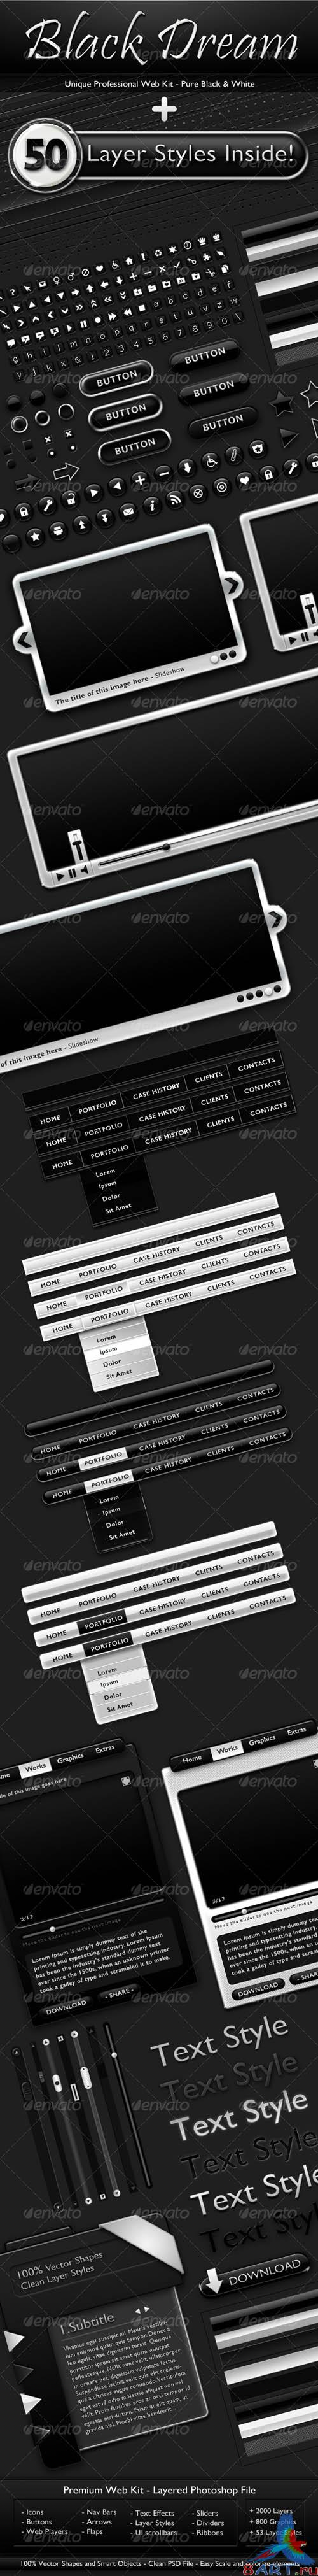 Black Dream - Professional Web Kit [GraphicRiver]